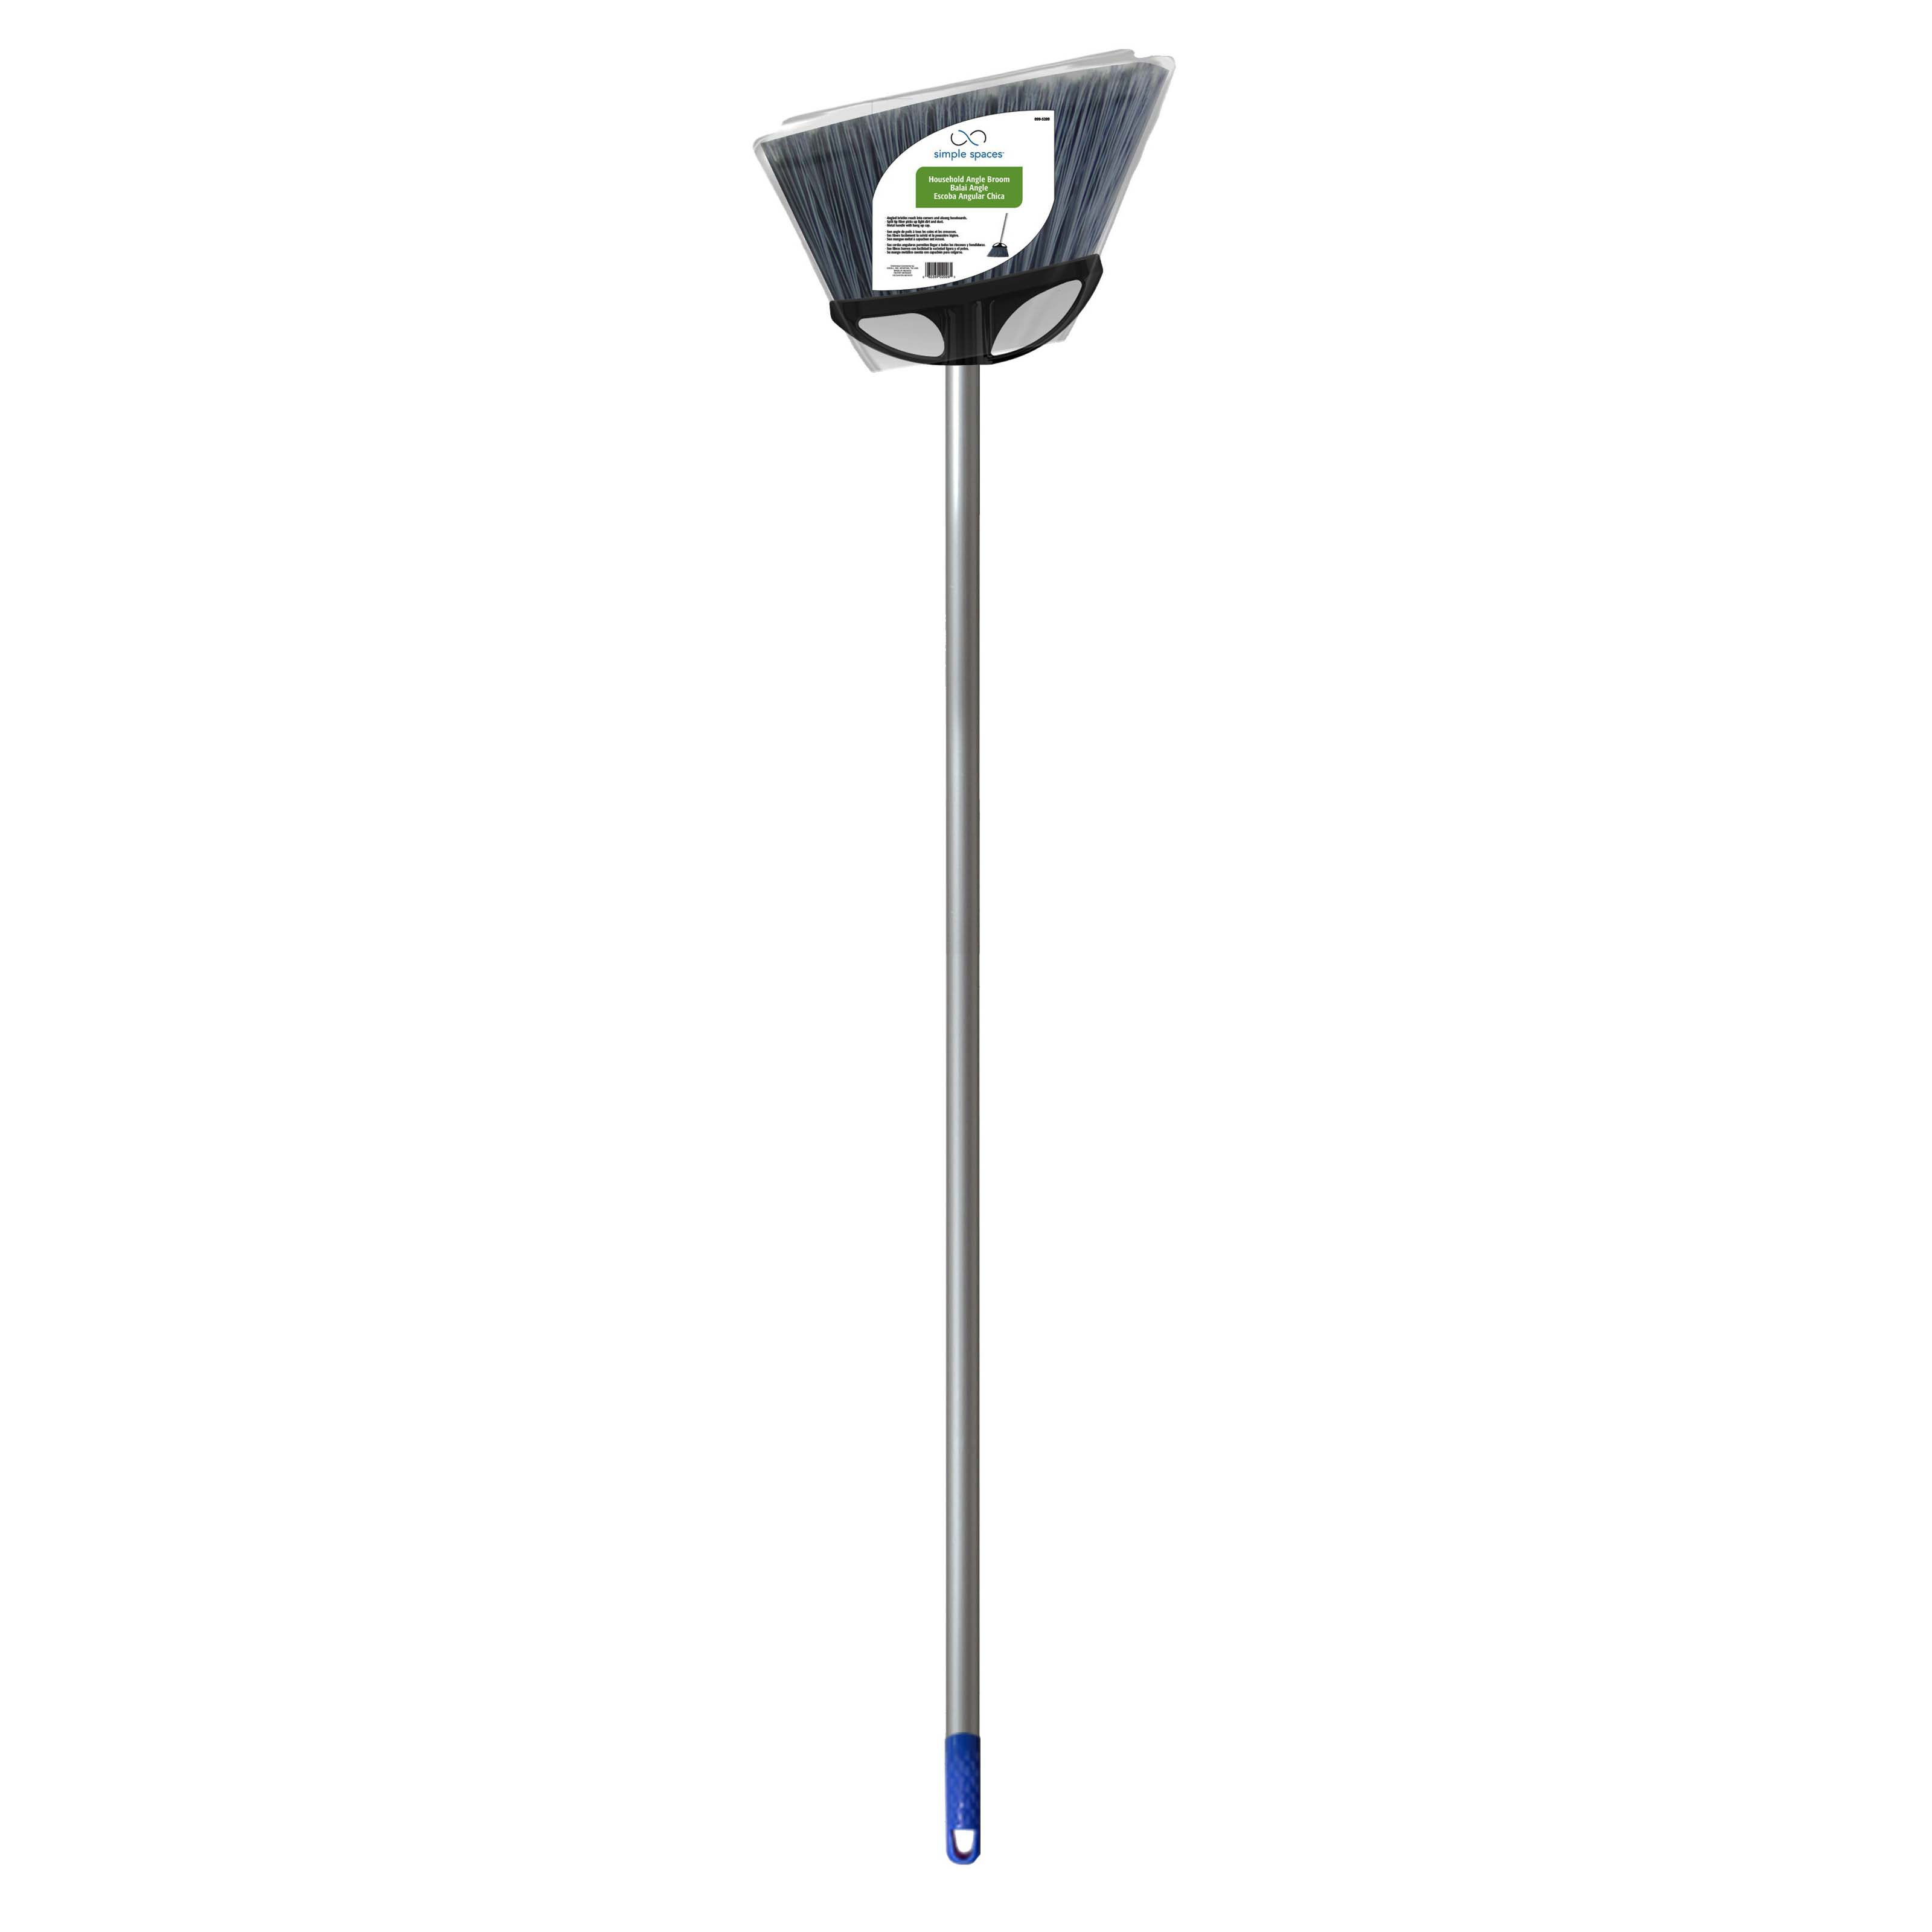 Picture of Simple Spaces 2026 Angle Broom, 6 in Sweep Face, Synthetic Fabric Bristle, Metal Handle